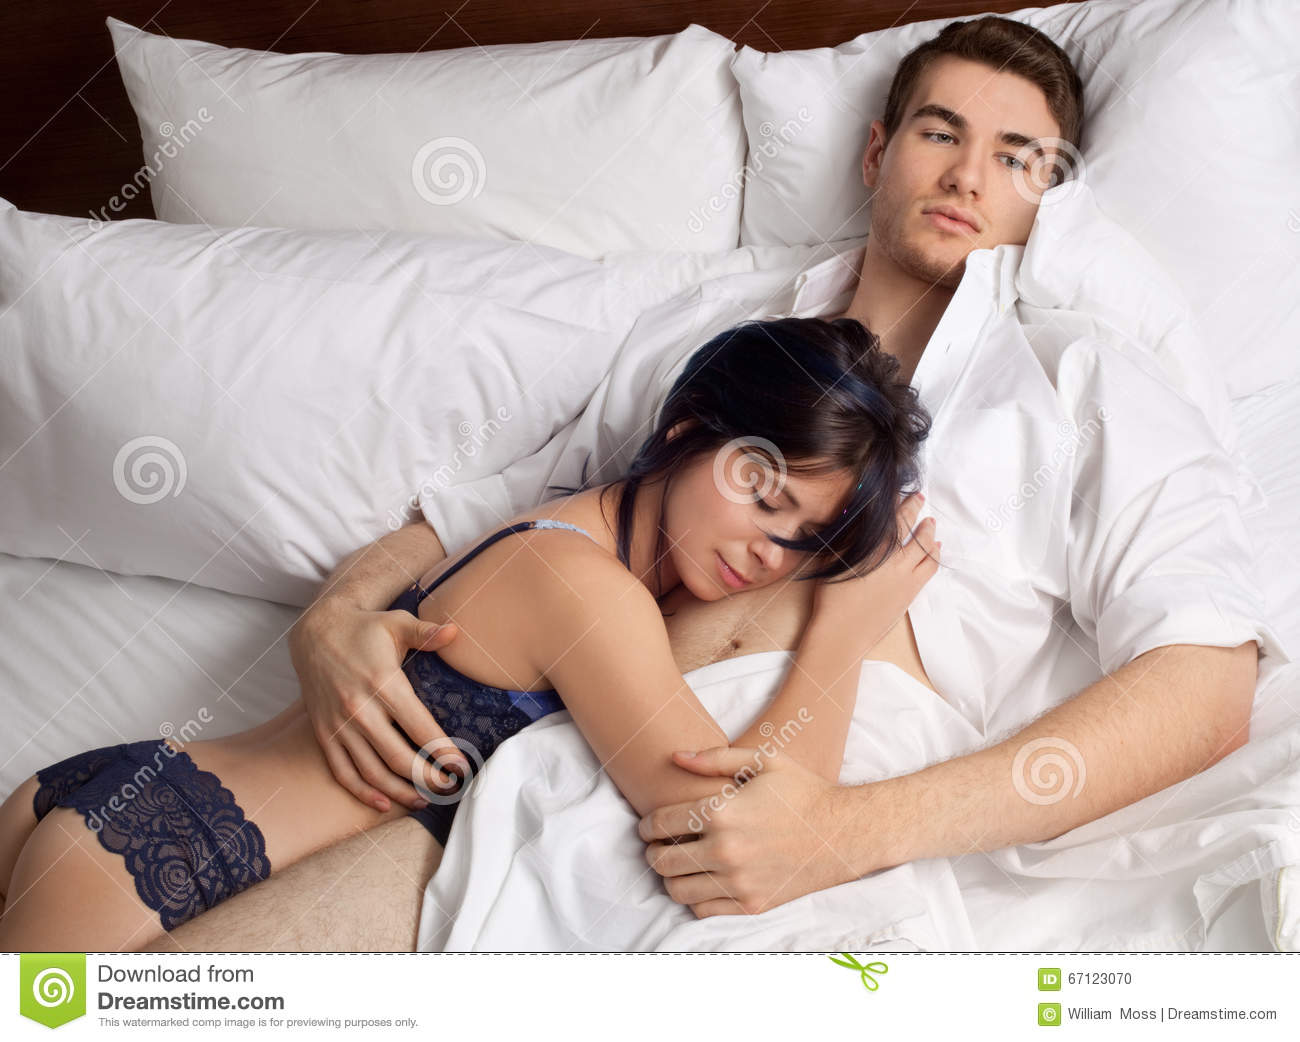 Images of couples cuddling in bed